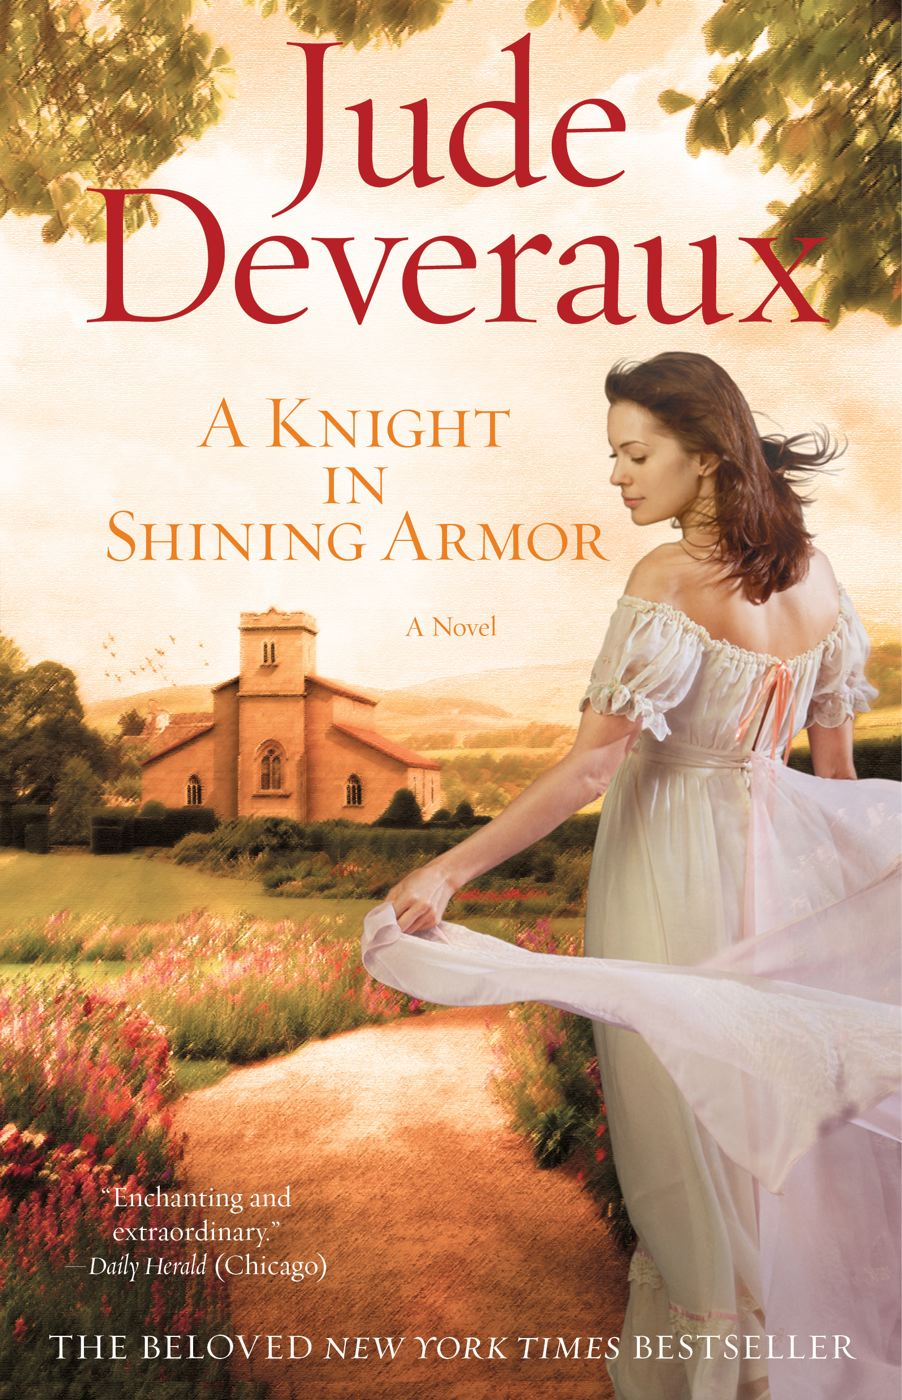 A Knight in Shining Armor By: Jude Deveraux